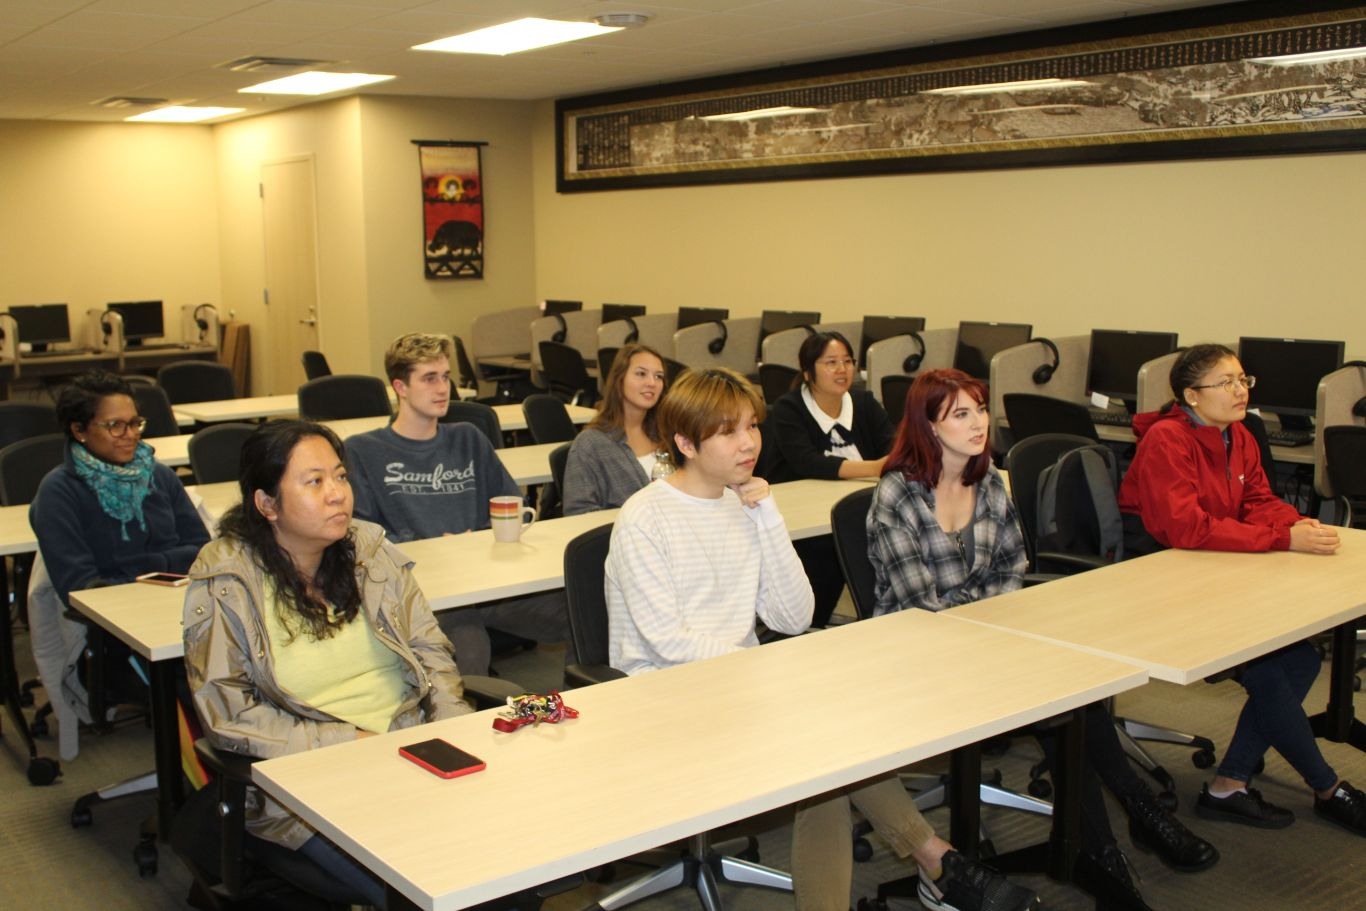 The students listen intently to the lecture on the history of the traditional Chinese games.